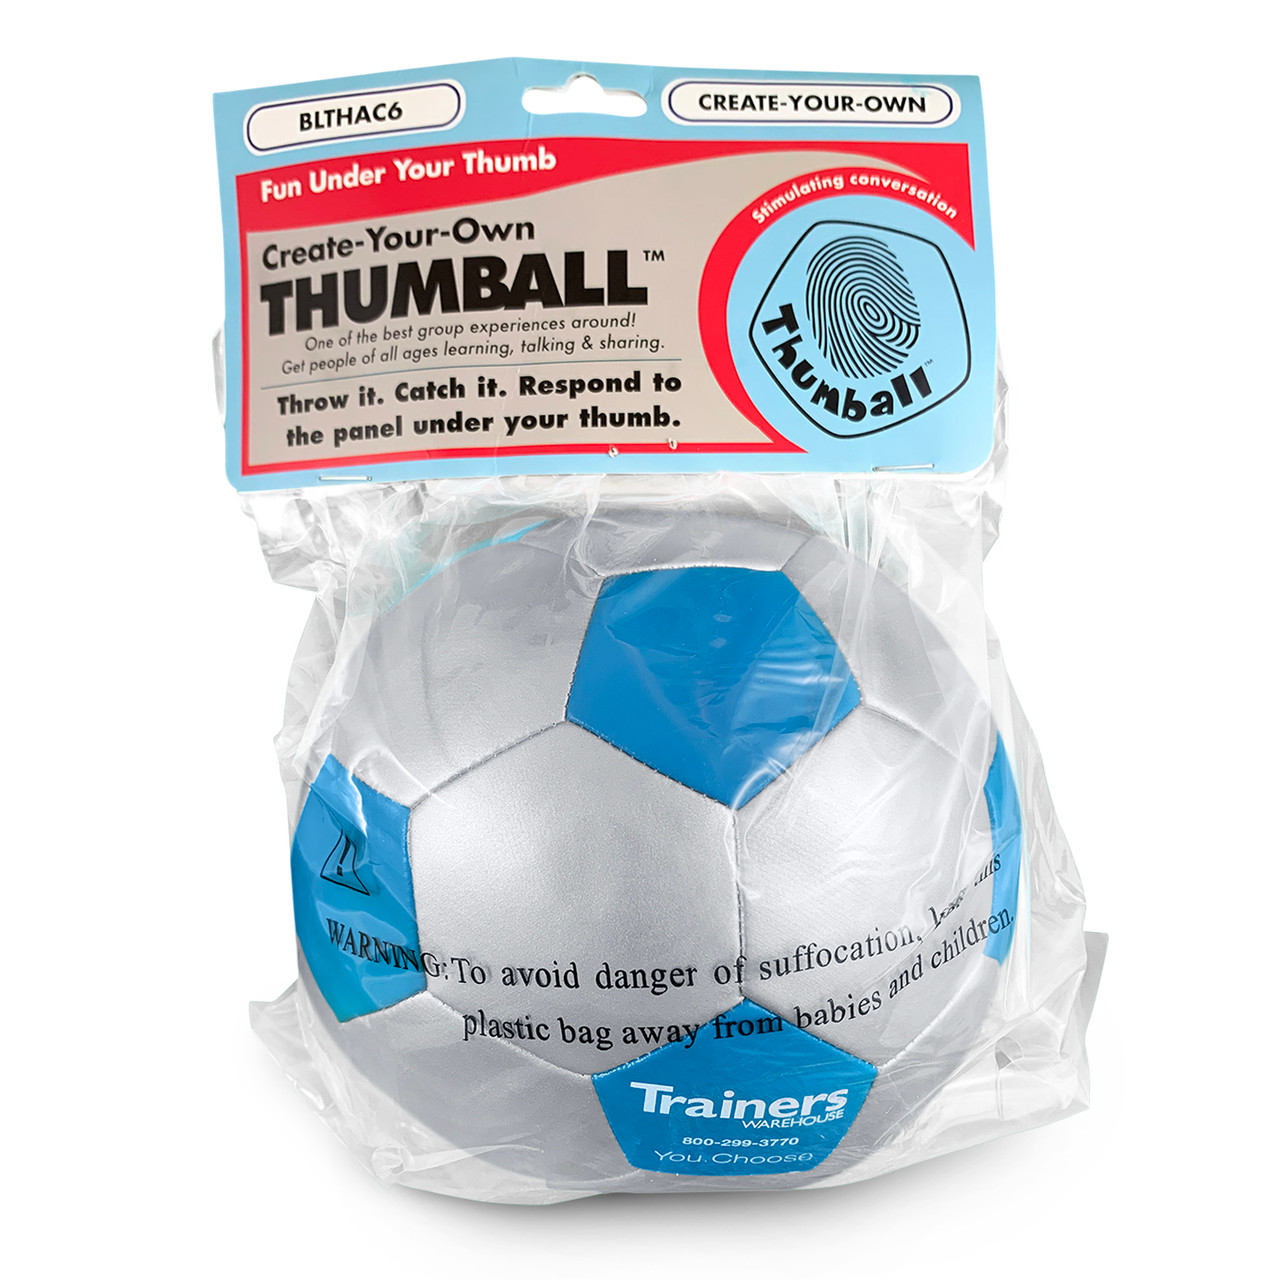 Create-Your-Own Thumball - in packaging